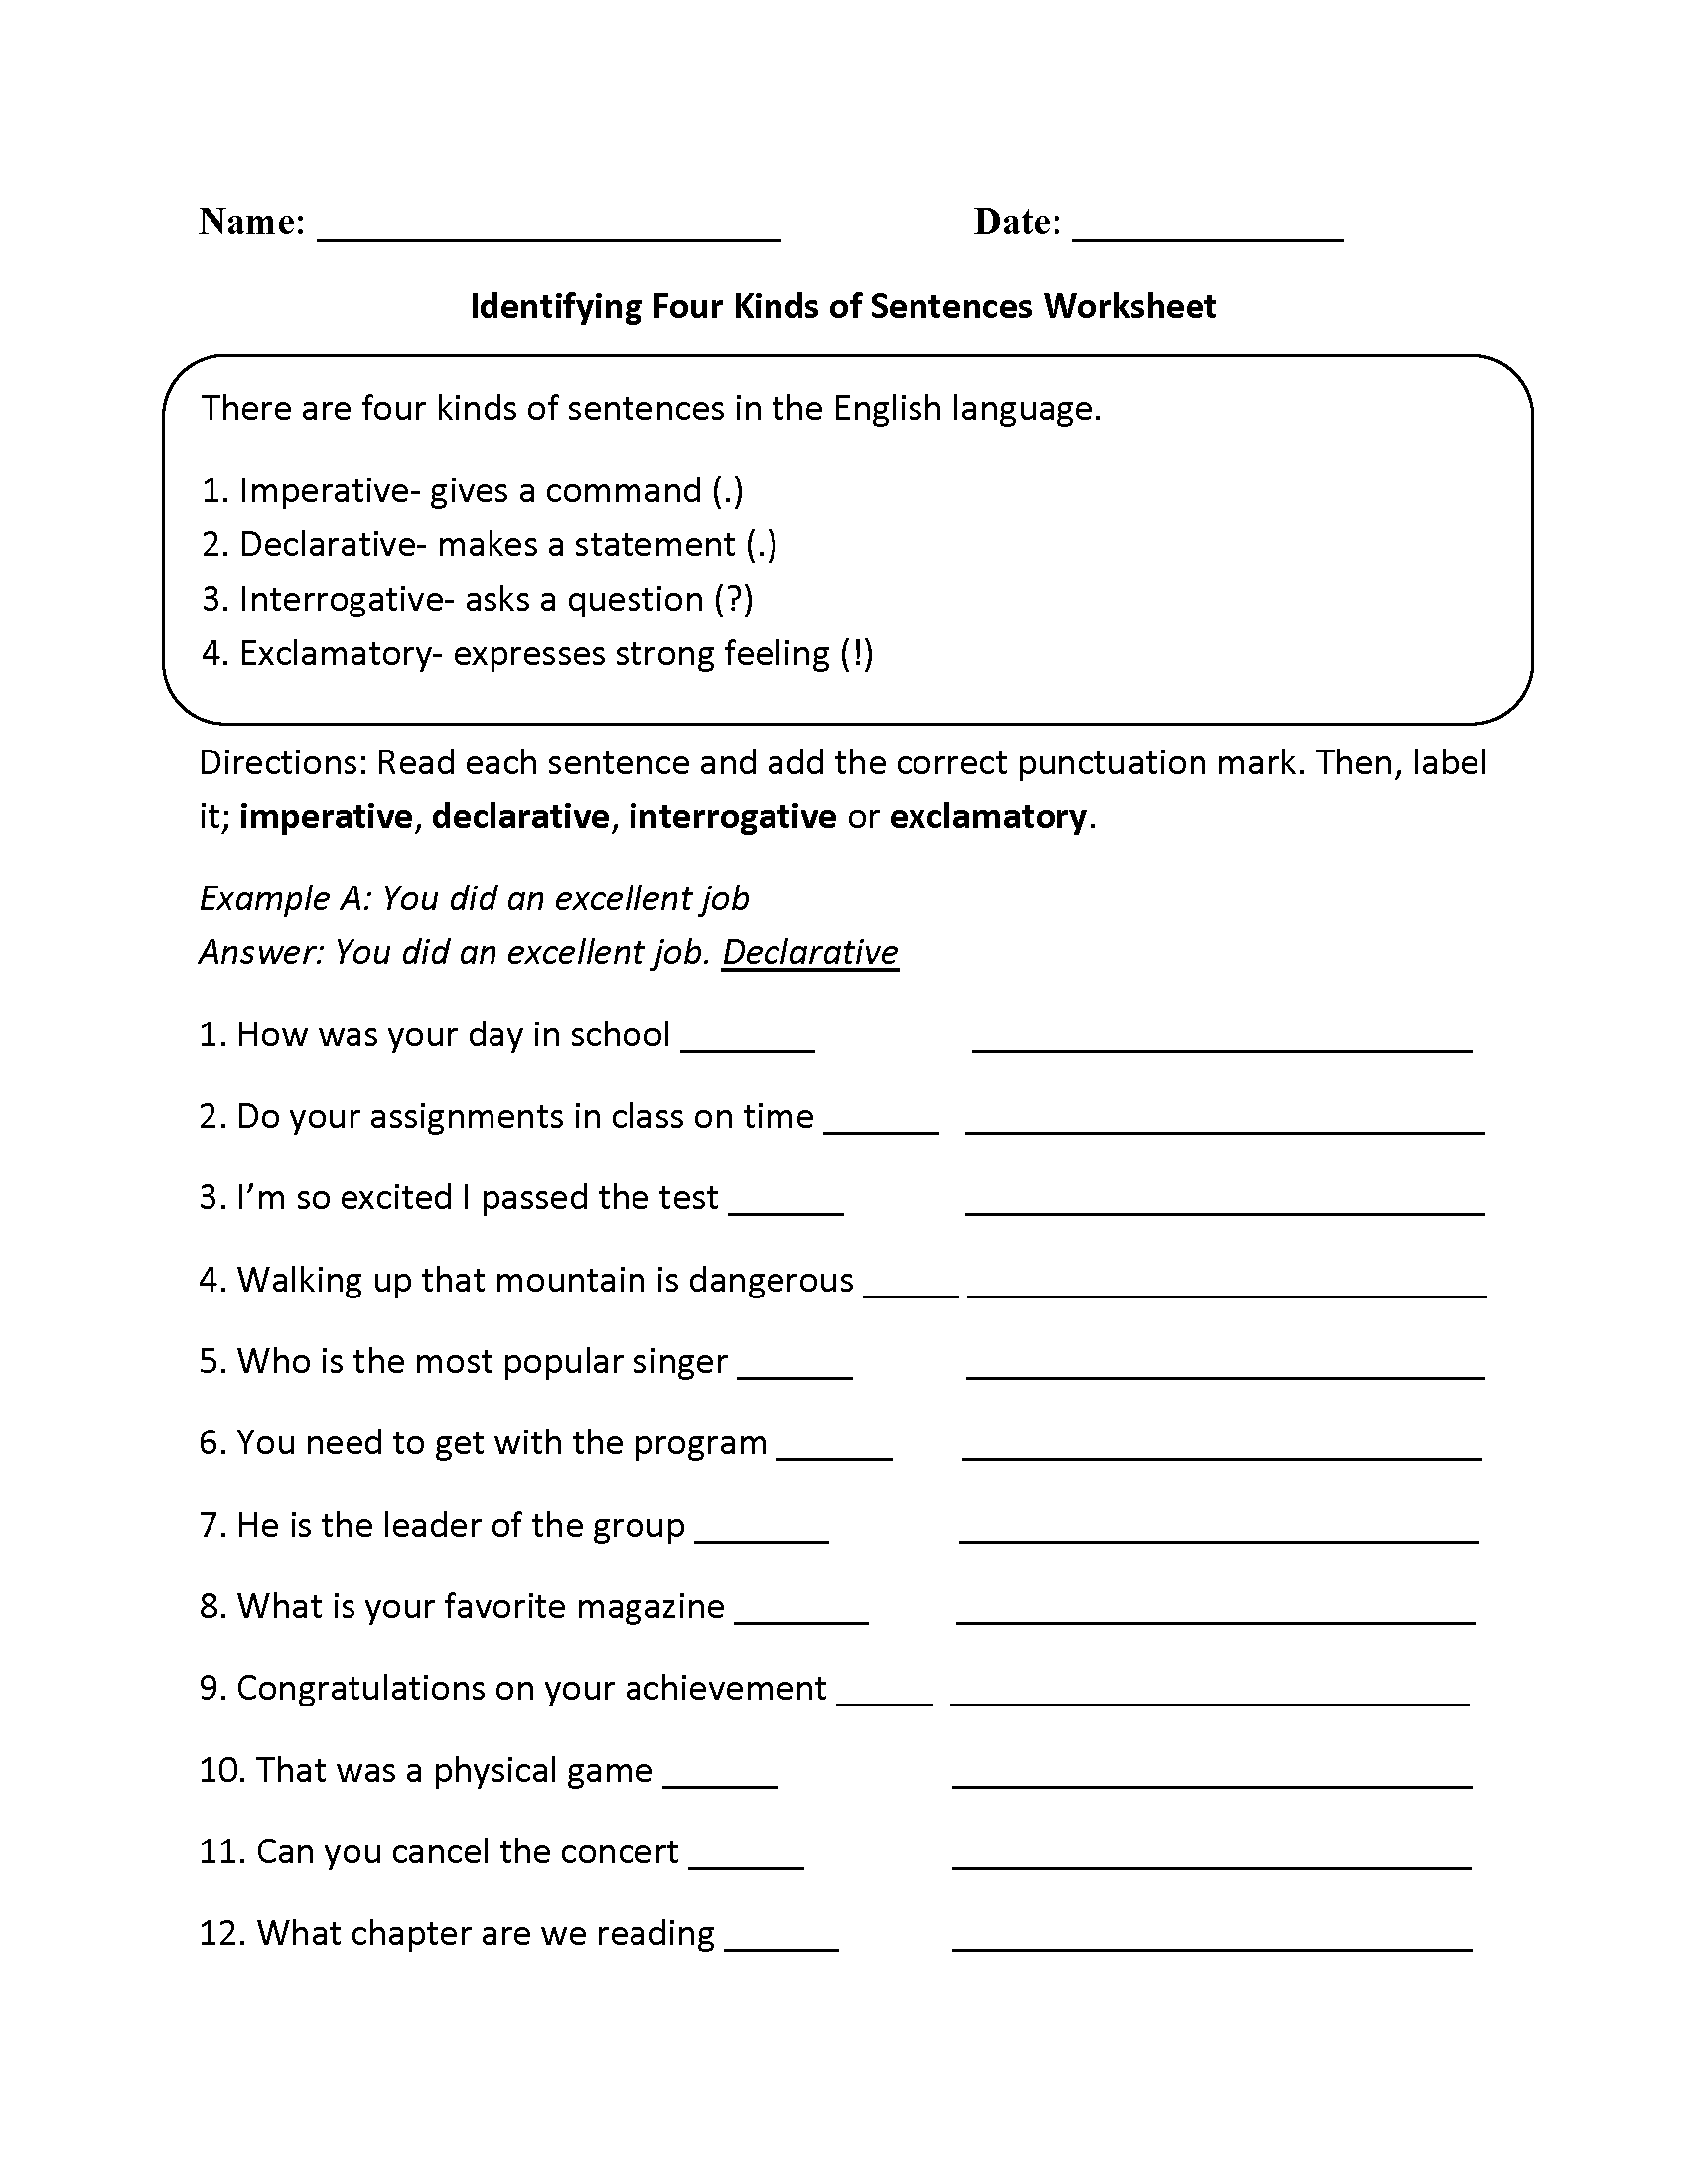 ... of Sentences Worksheets | Practicing Four Kinds of Sentences Worksheet